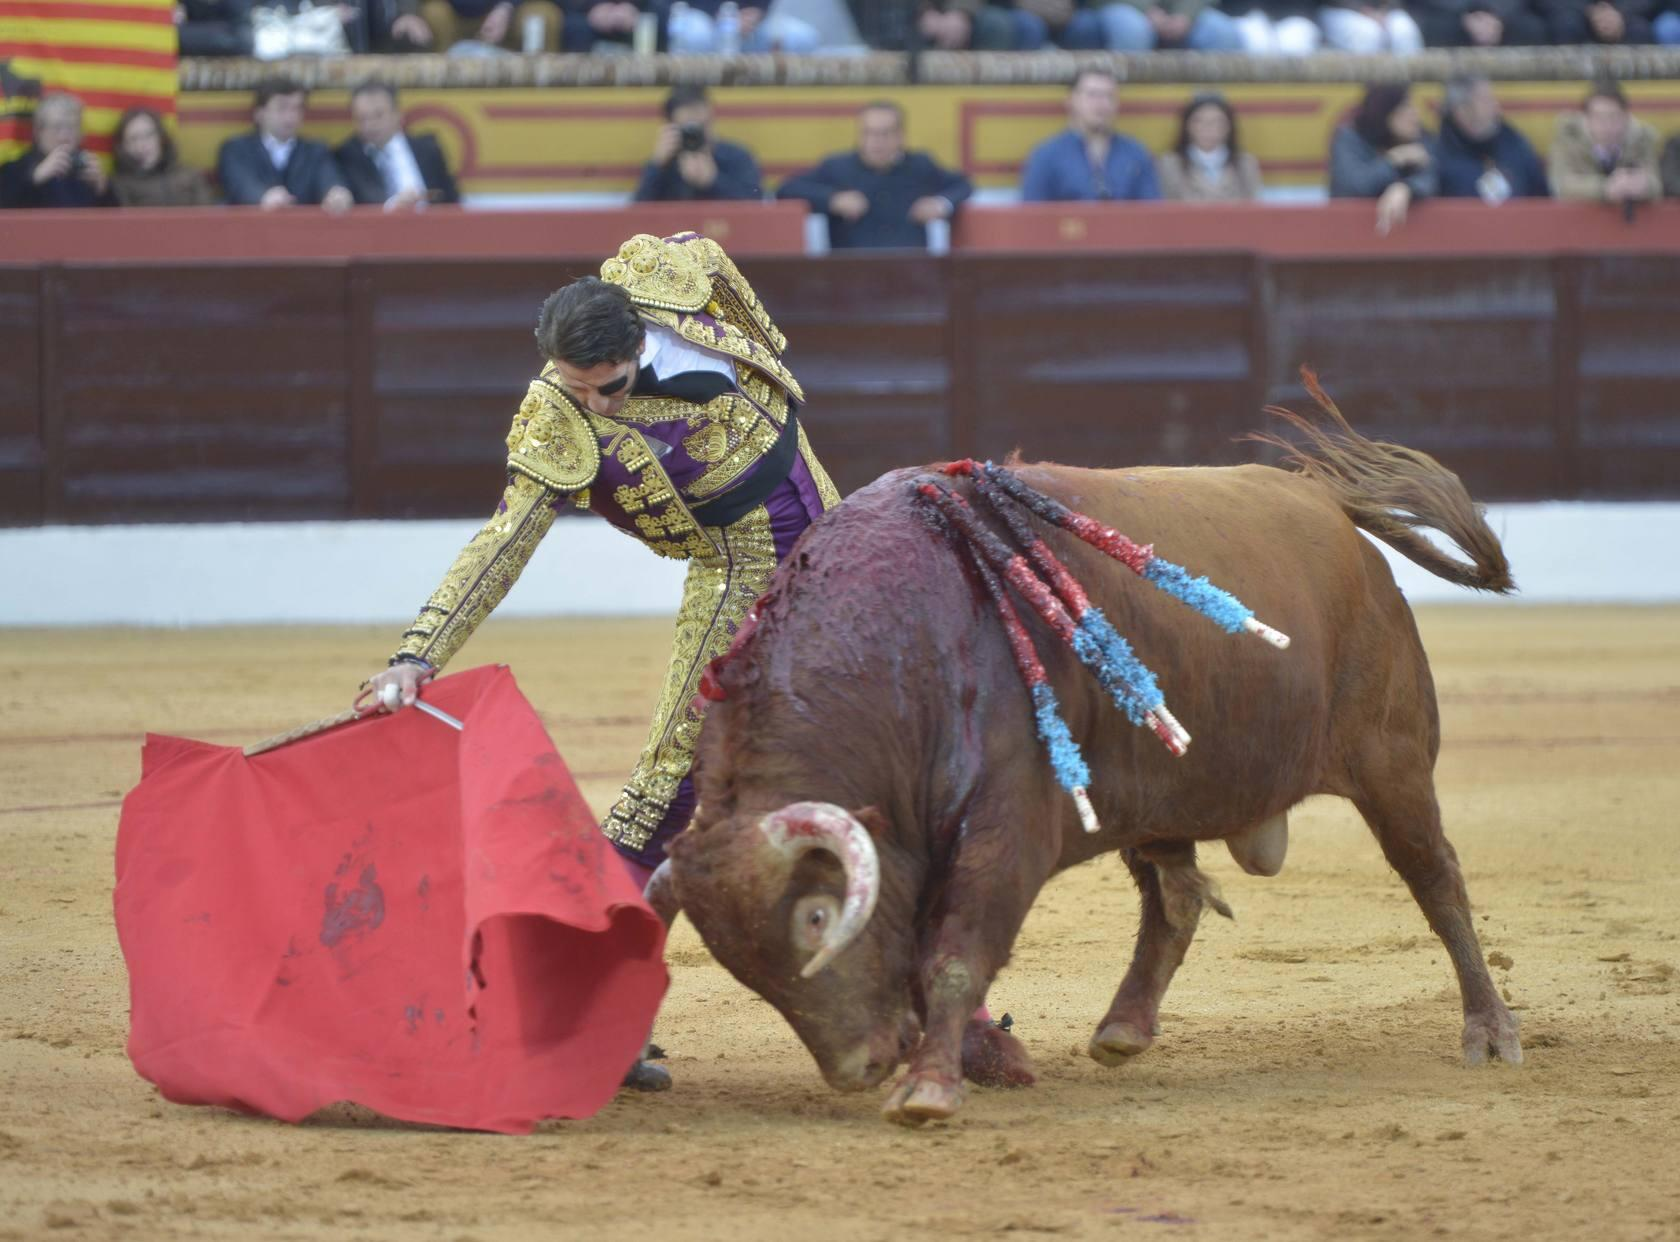 TOROS OLIVENZA | 'El Juli' y Perera supieron aprovechar el buen toro que le toc&oacute; a cada uno